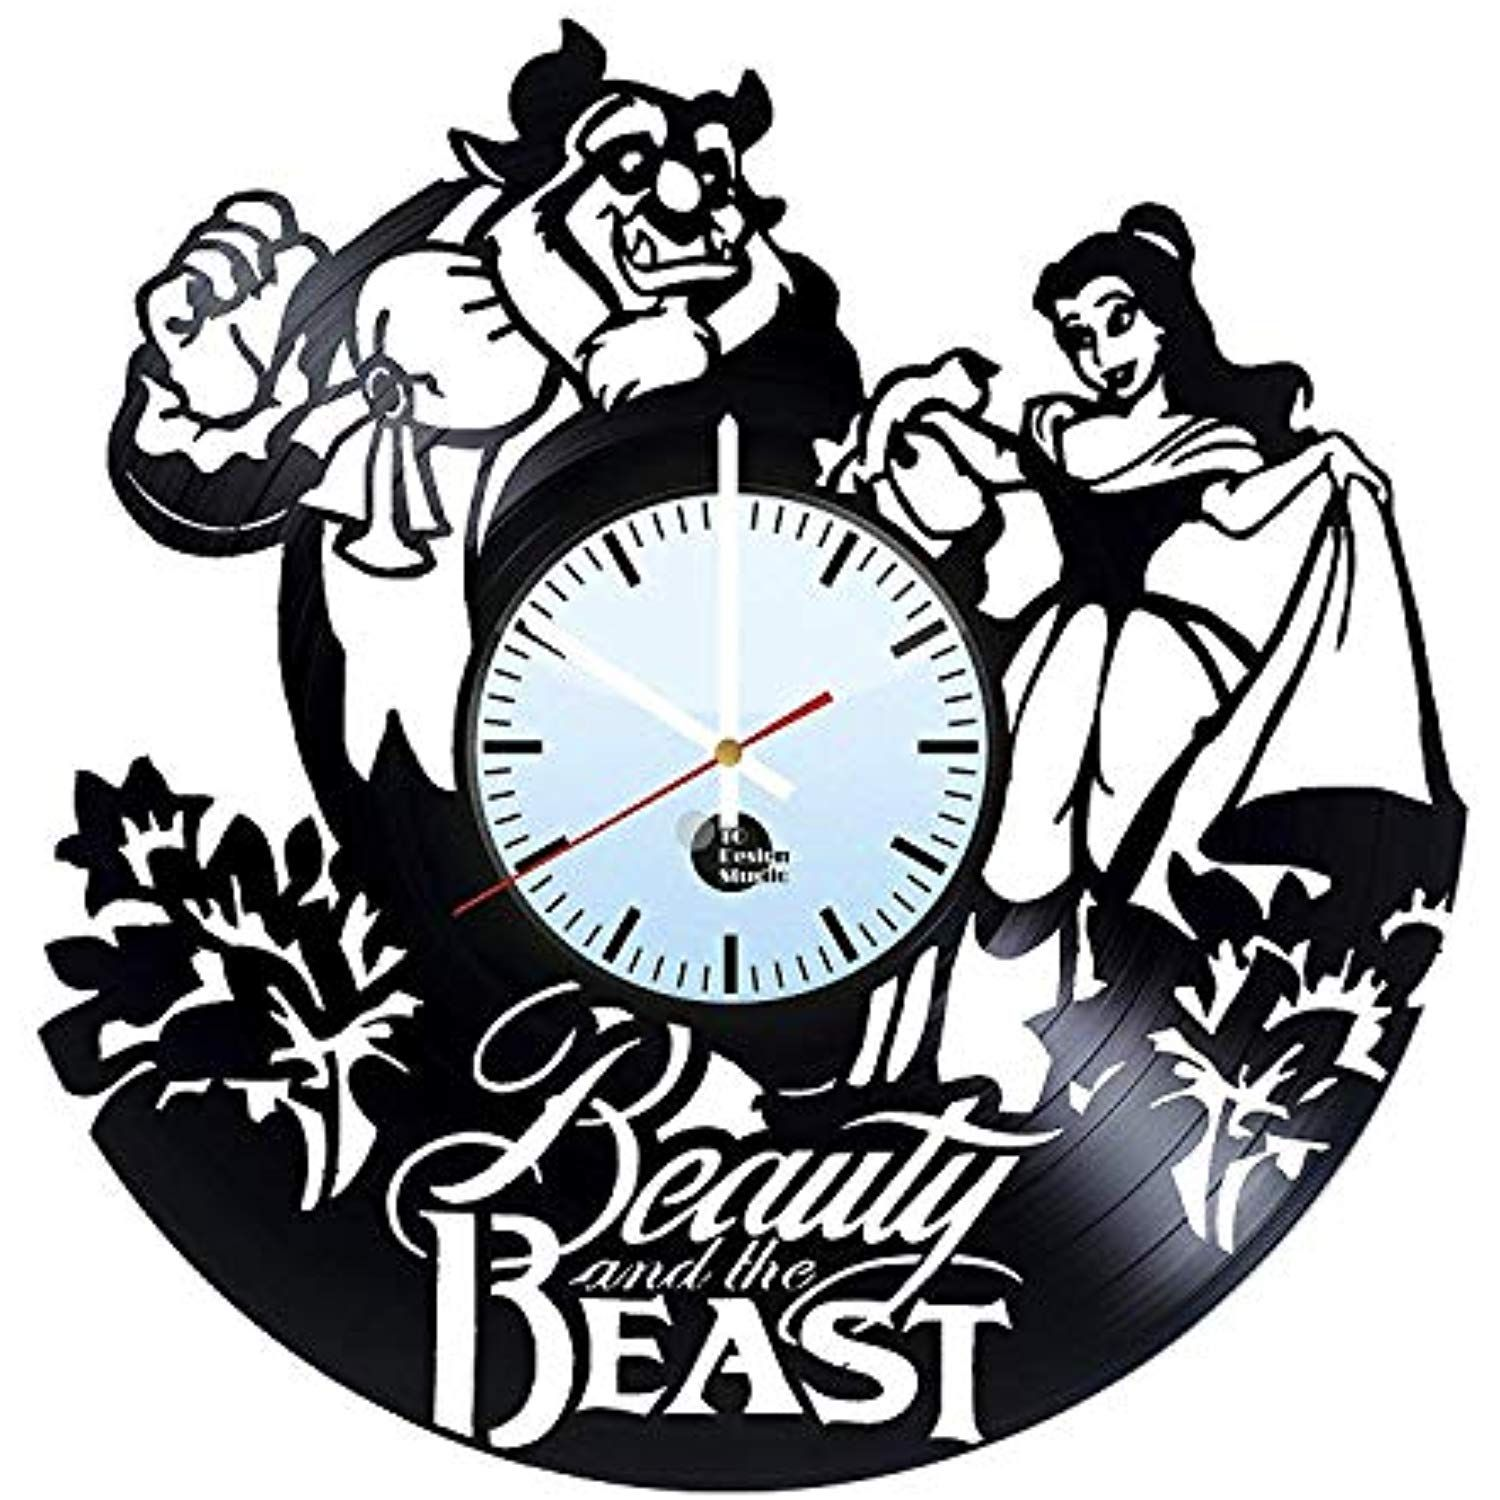 Beauty and the beast vinyl record wall clock get unique